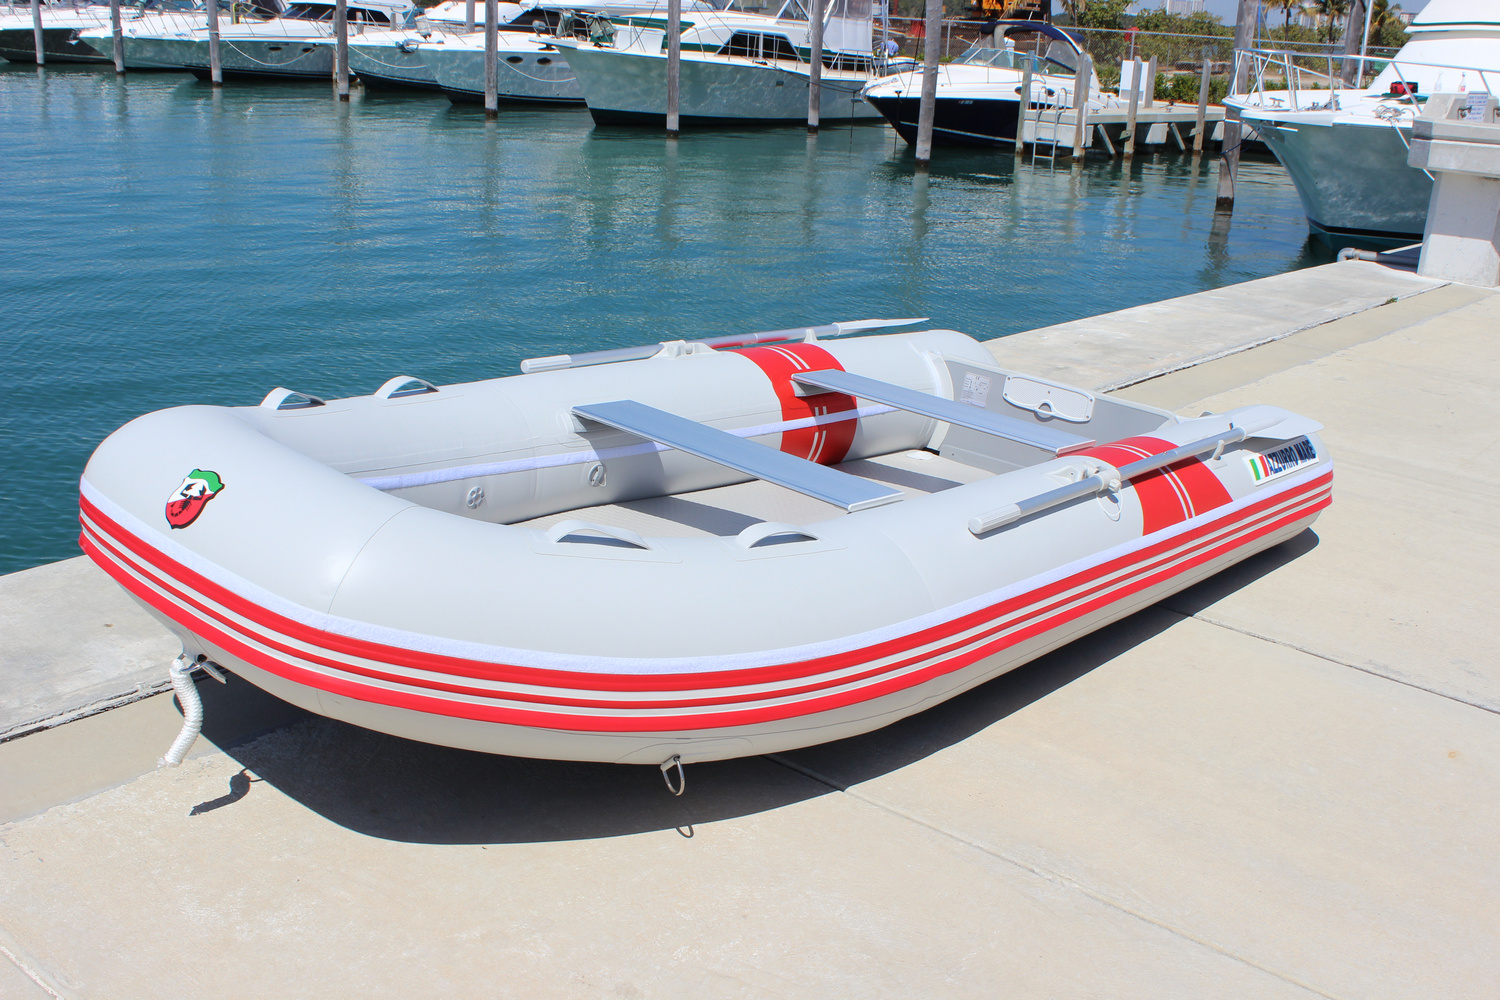 12 FT Azzurro Mare Heavy Duty Inflatable Boat Dinghy AM365 ...